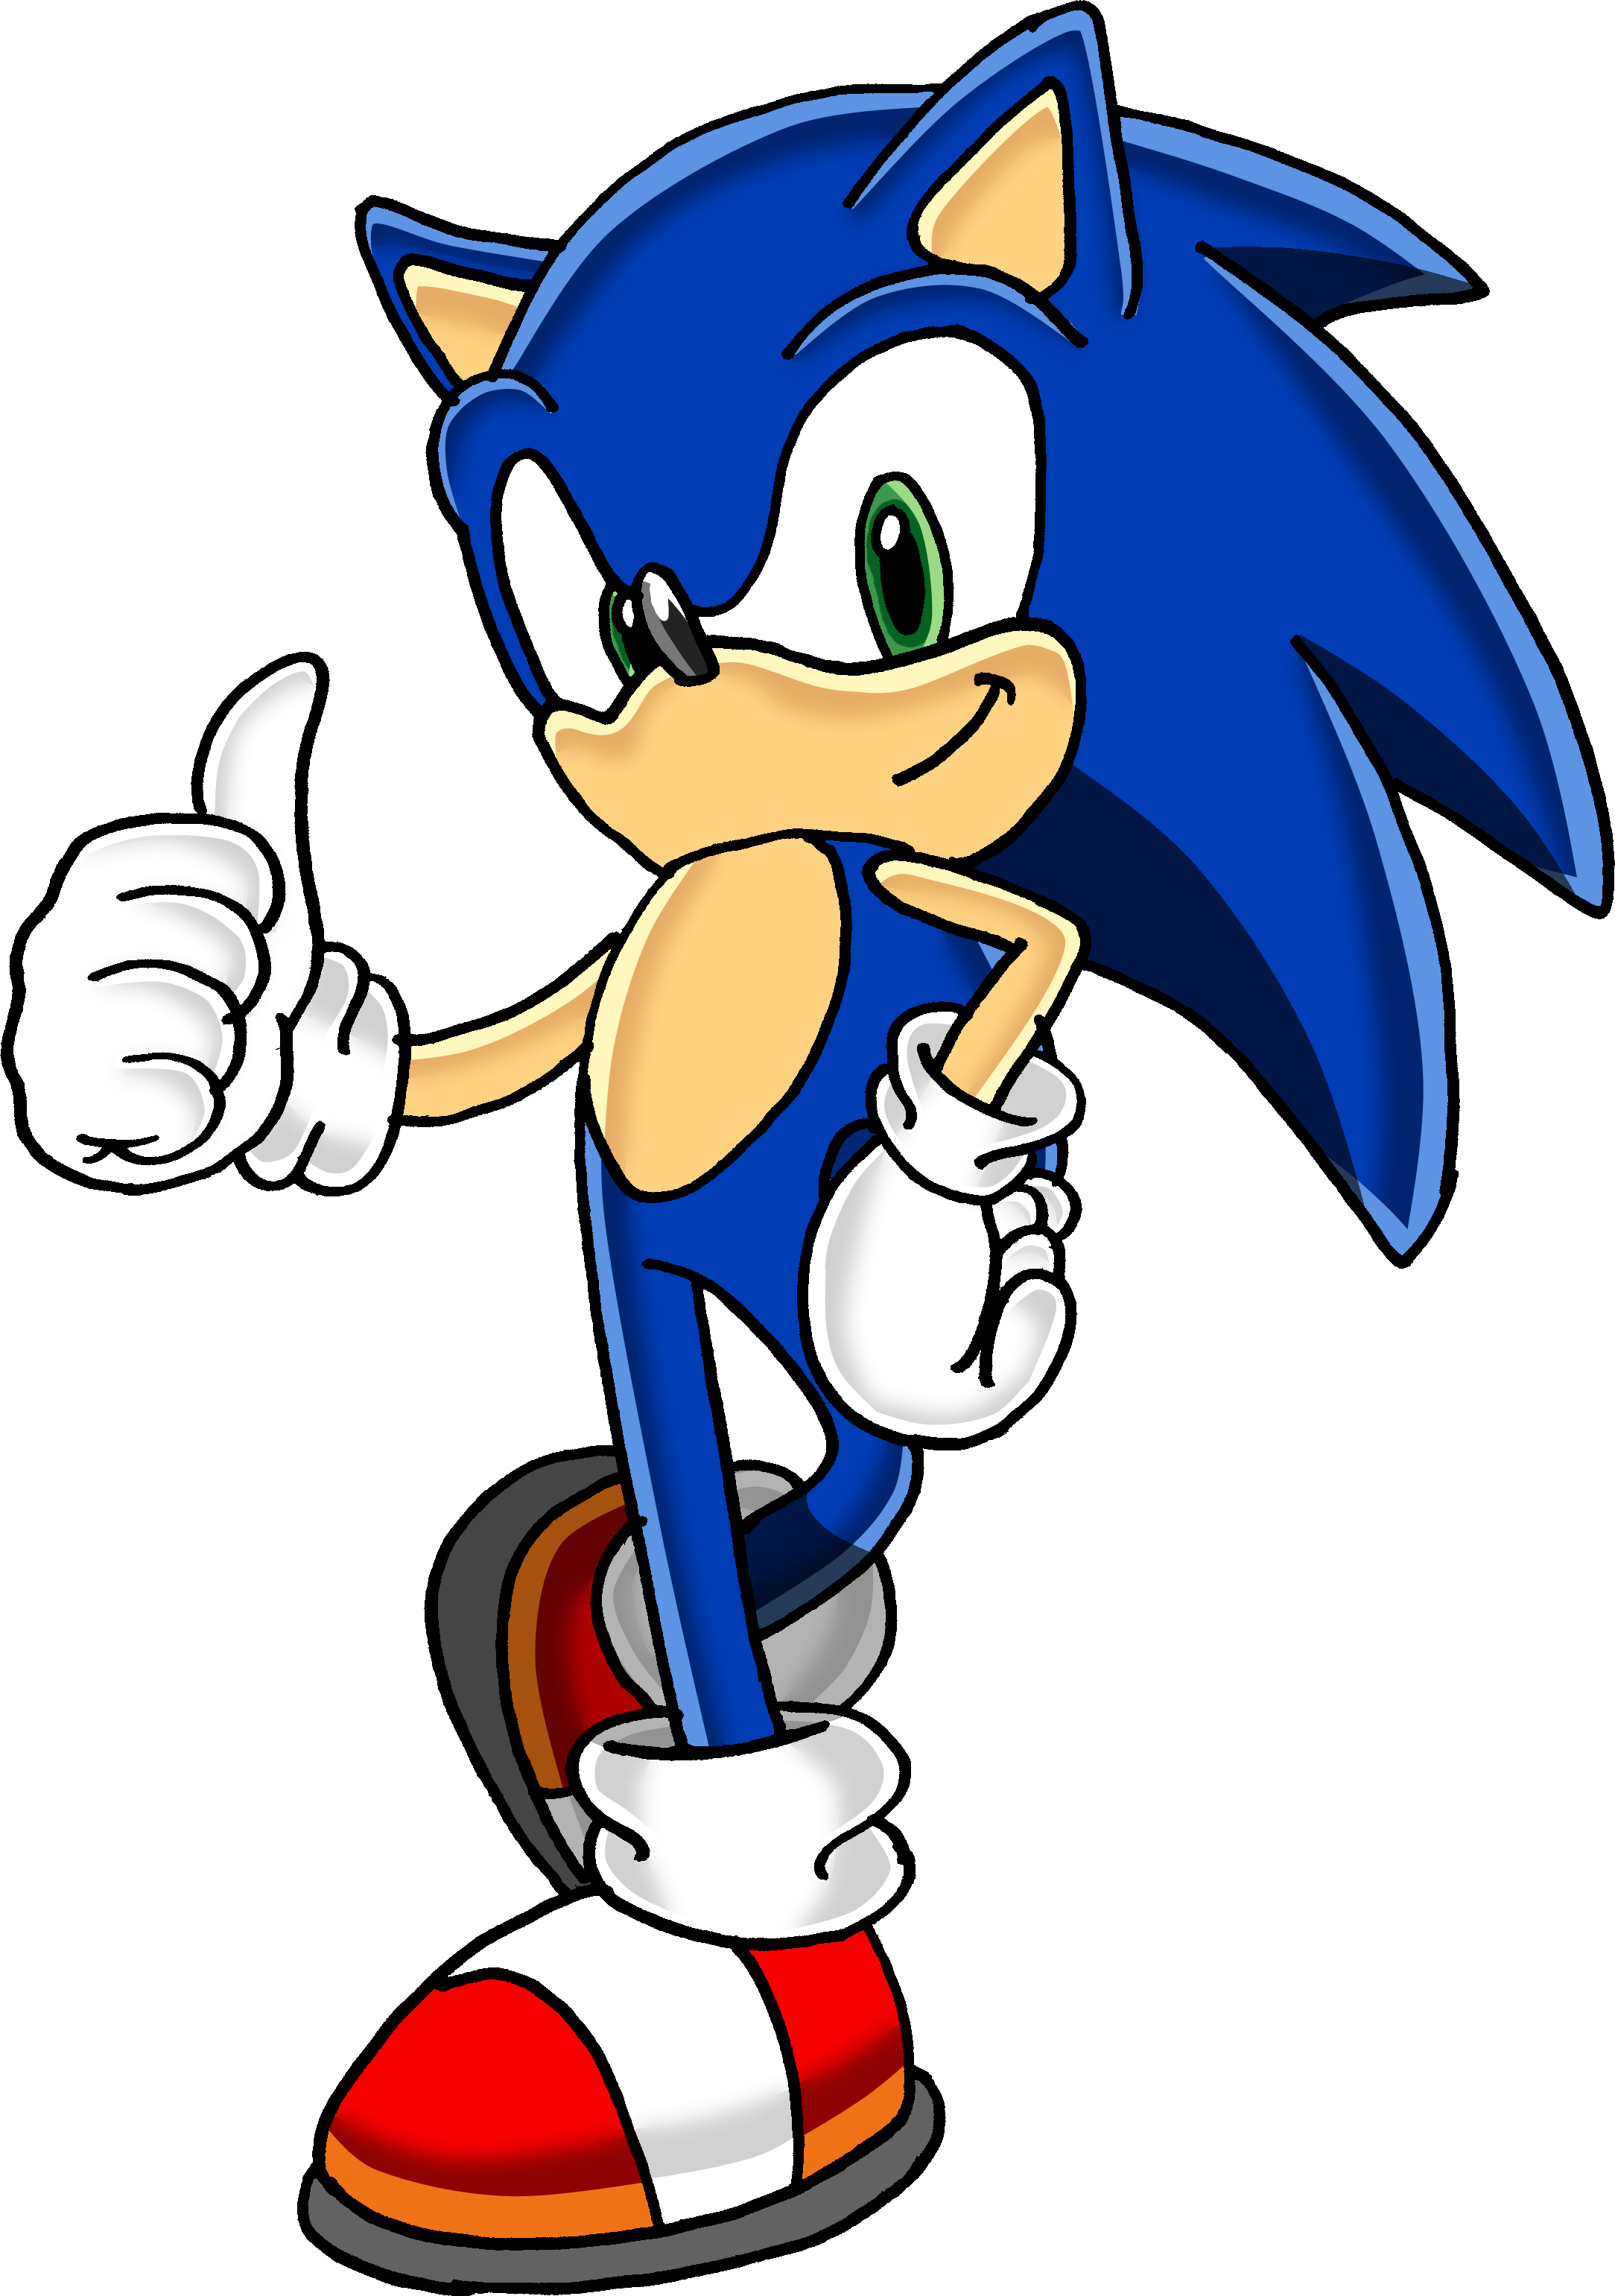 Sonic the hedgehog png. Image news network fandom